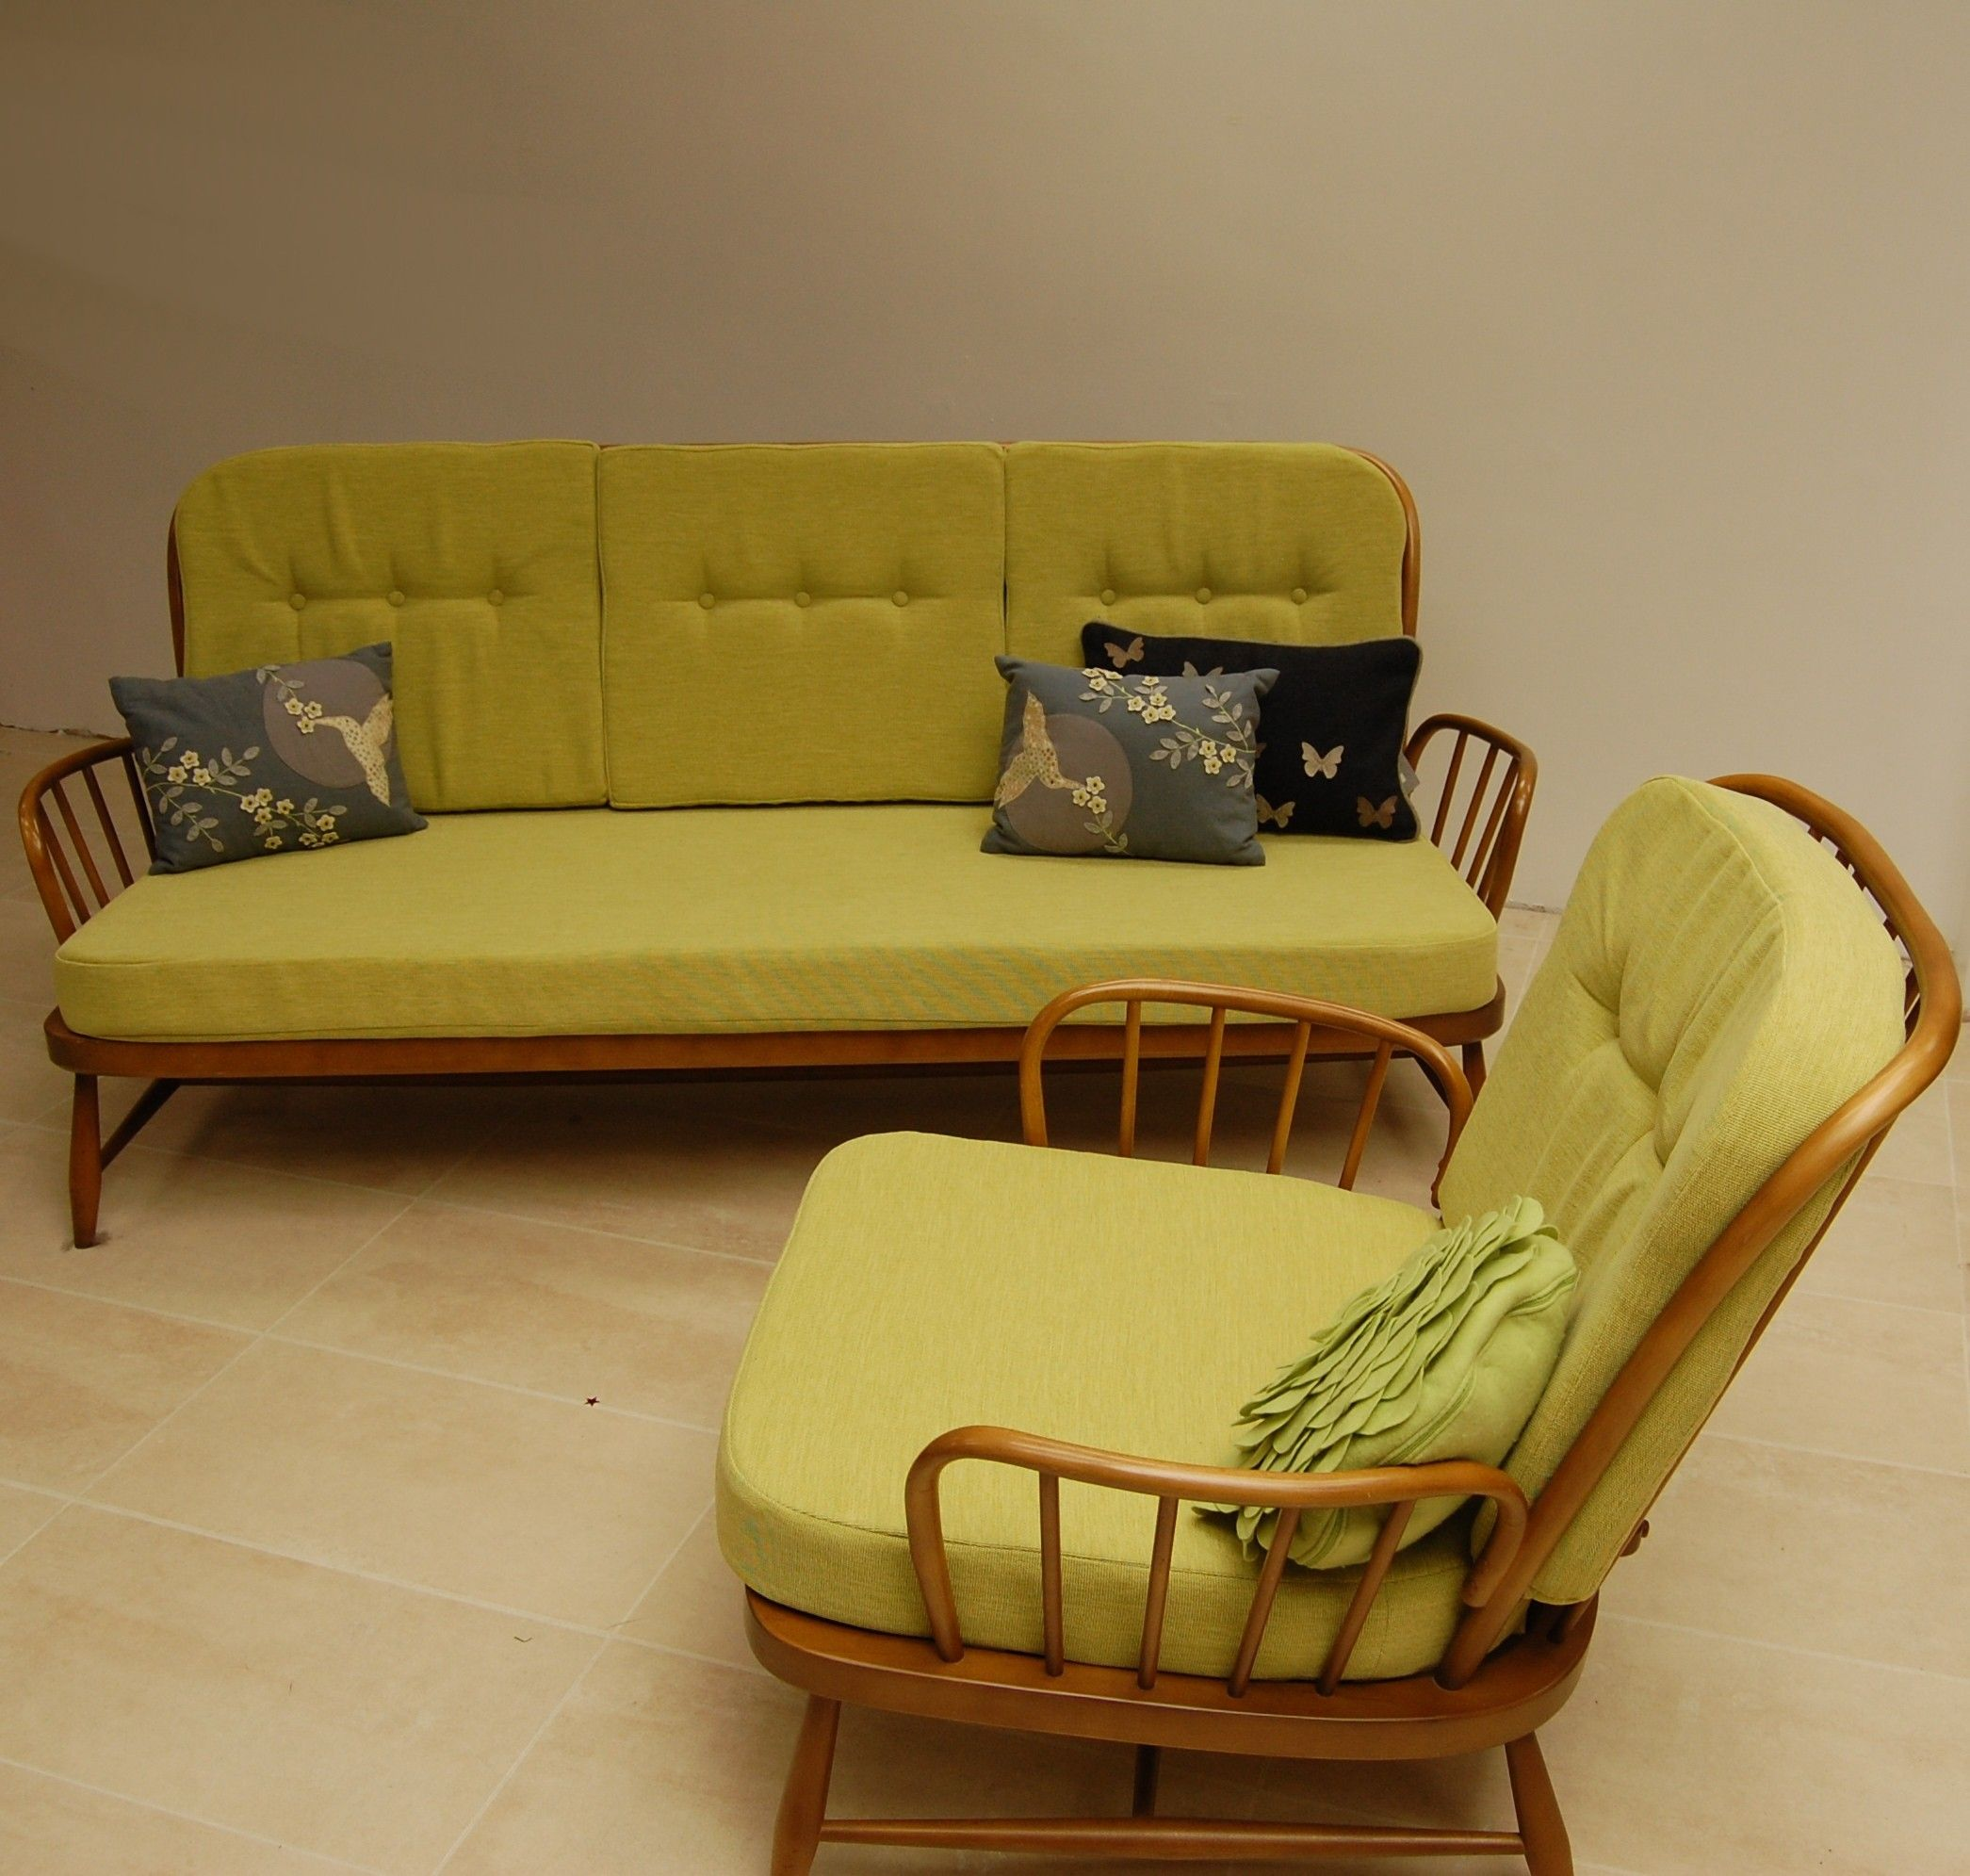 Ercol Solid Beech Sofa Long Daybed like Green Cushions  Tub Arm Chair   the  Ercol is like new all new upholstery and is currently for sale tooErcol 1970s Solid Beech 2m Sofa Long Daybed like Green Cushions    . Ercol Easy Chairs For Sale. Home Design Ideas